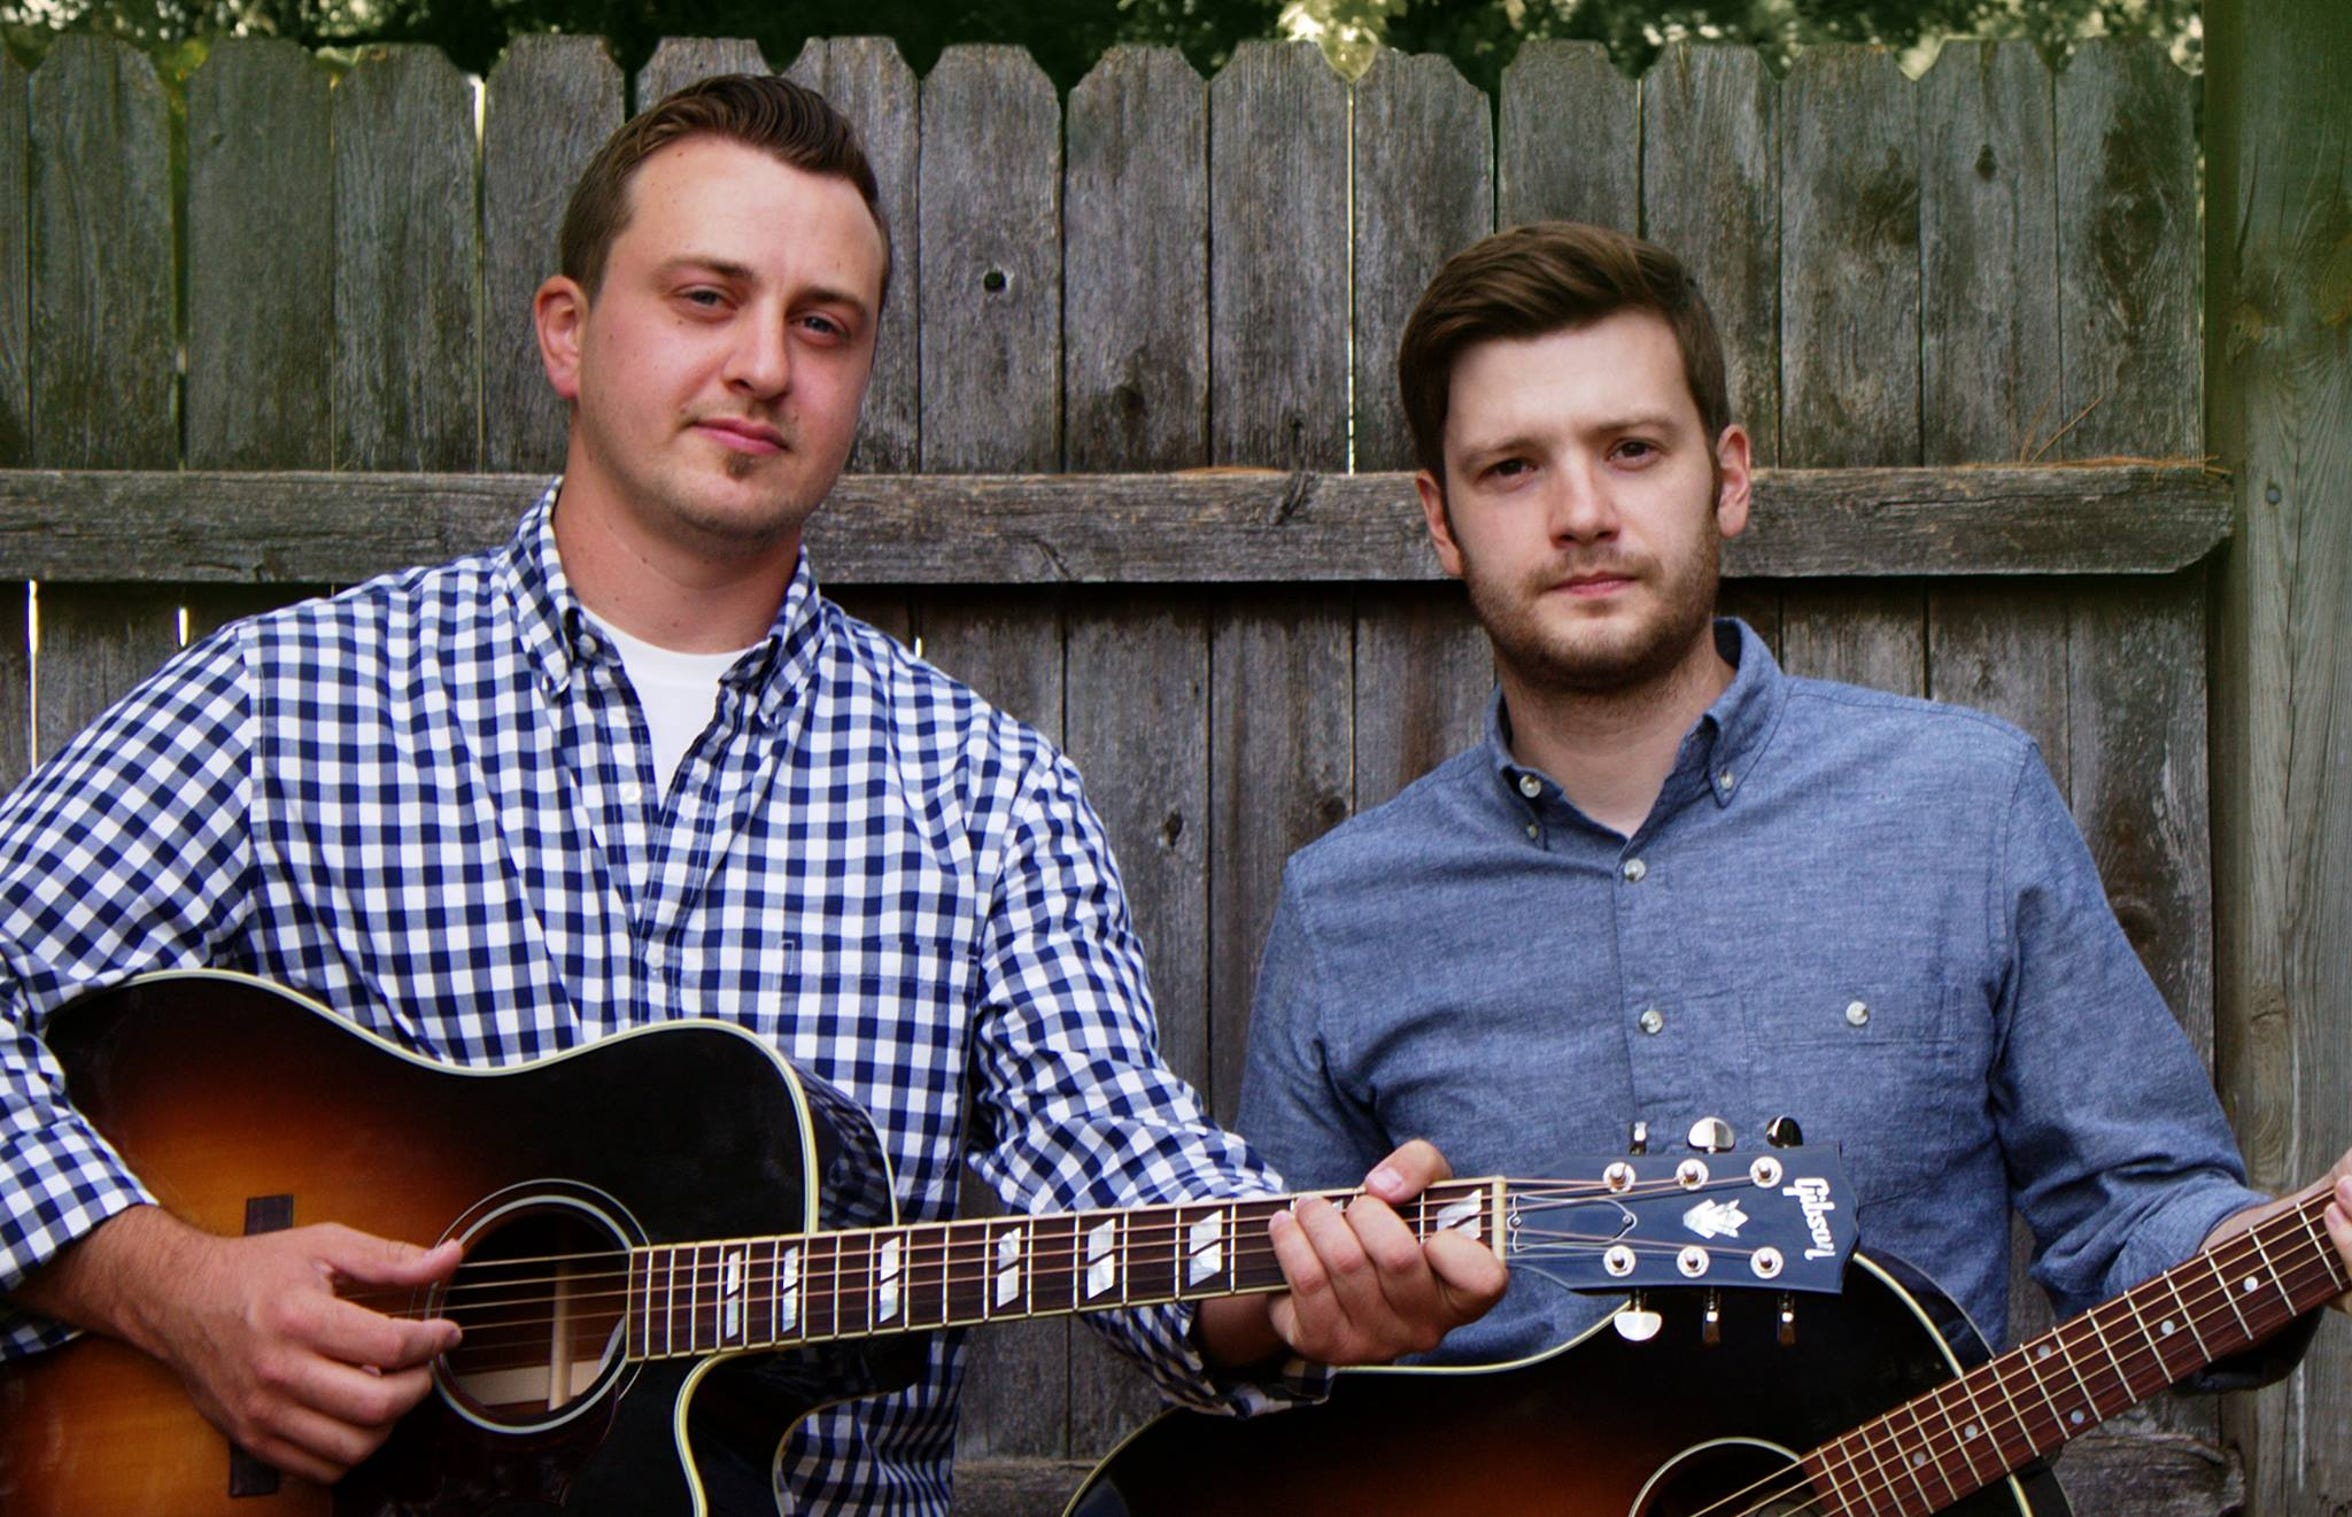 AAron Hehl and John Dutton will play Lot 323 in Woodbury on July 27, 2018.